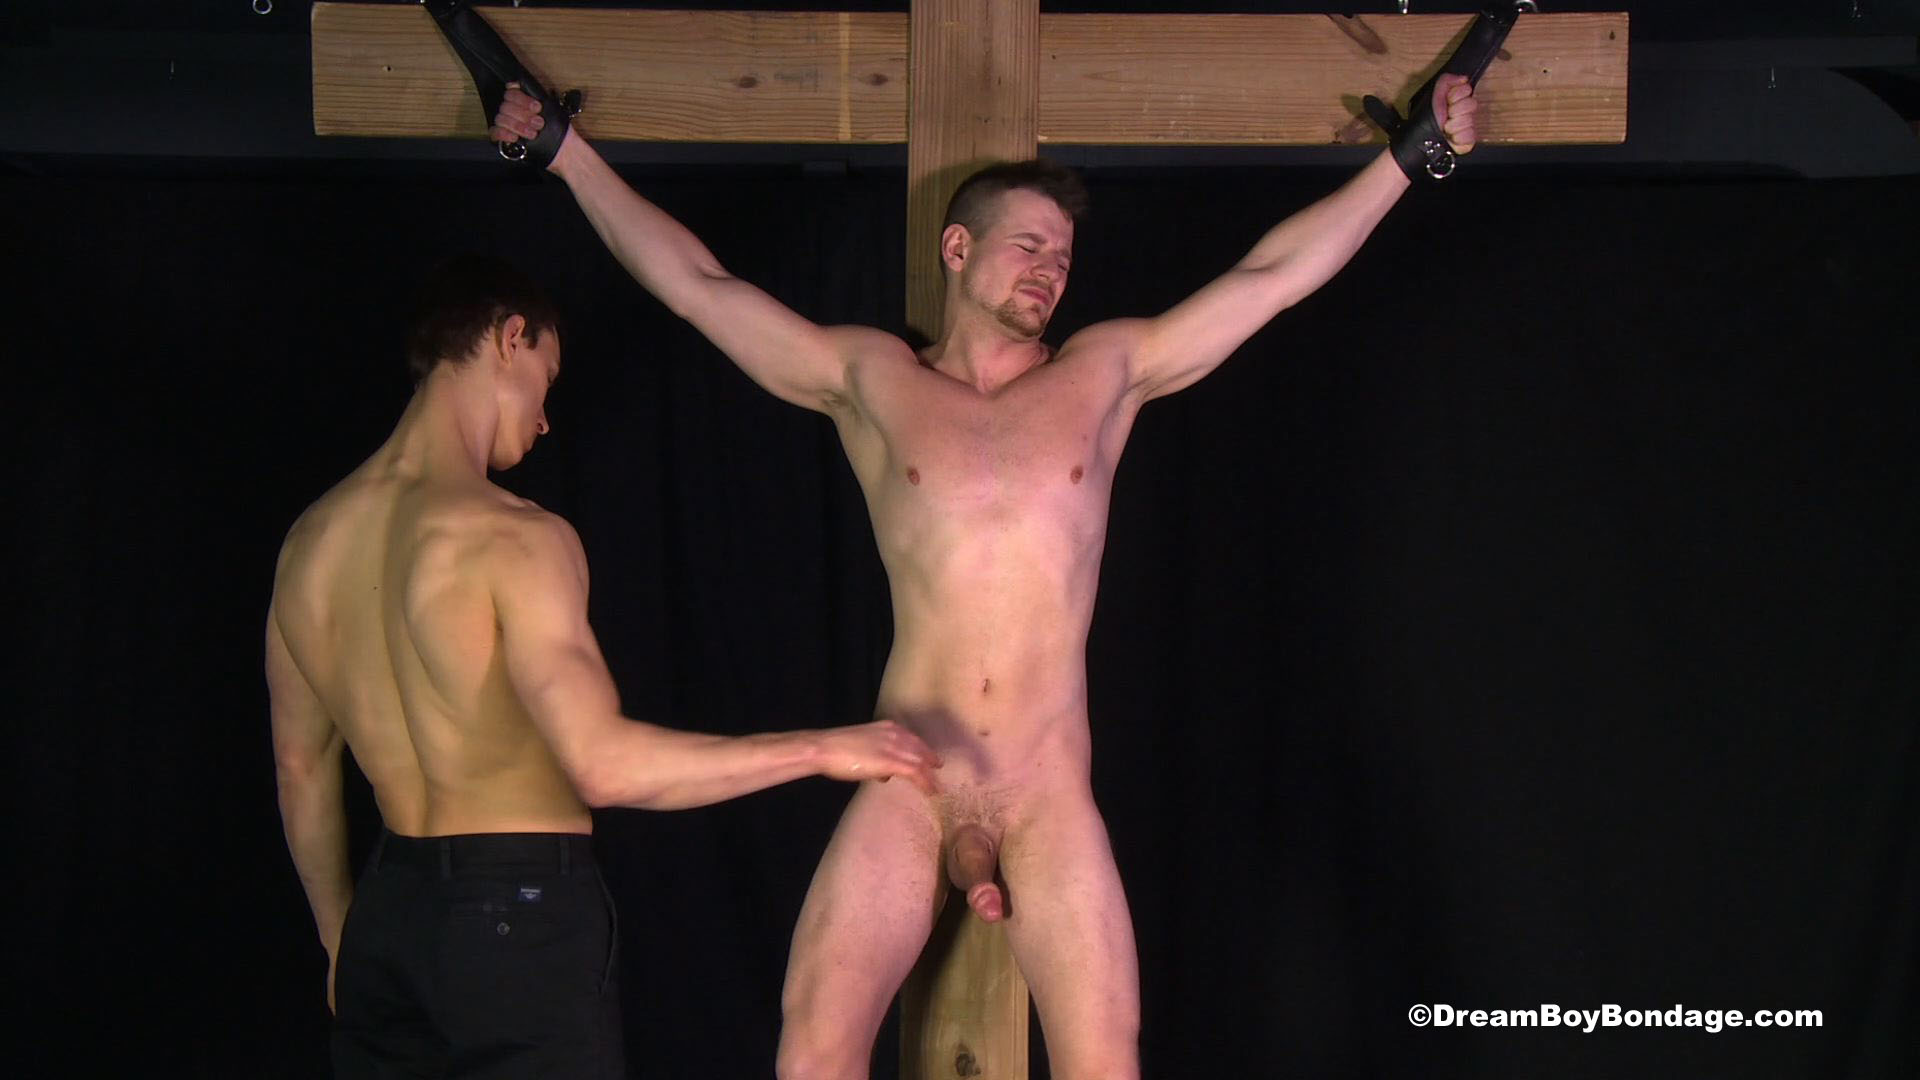 from Winston gay bondage tube